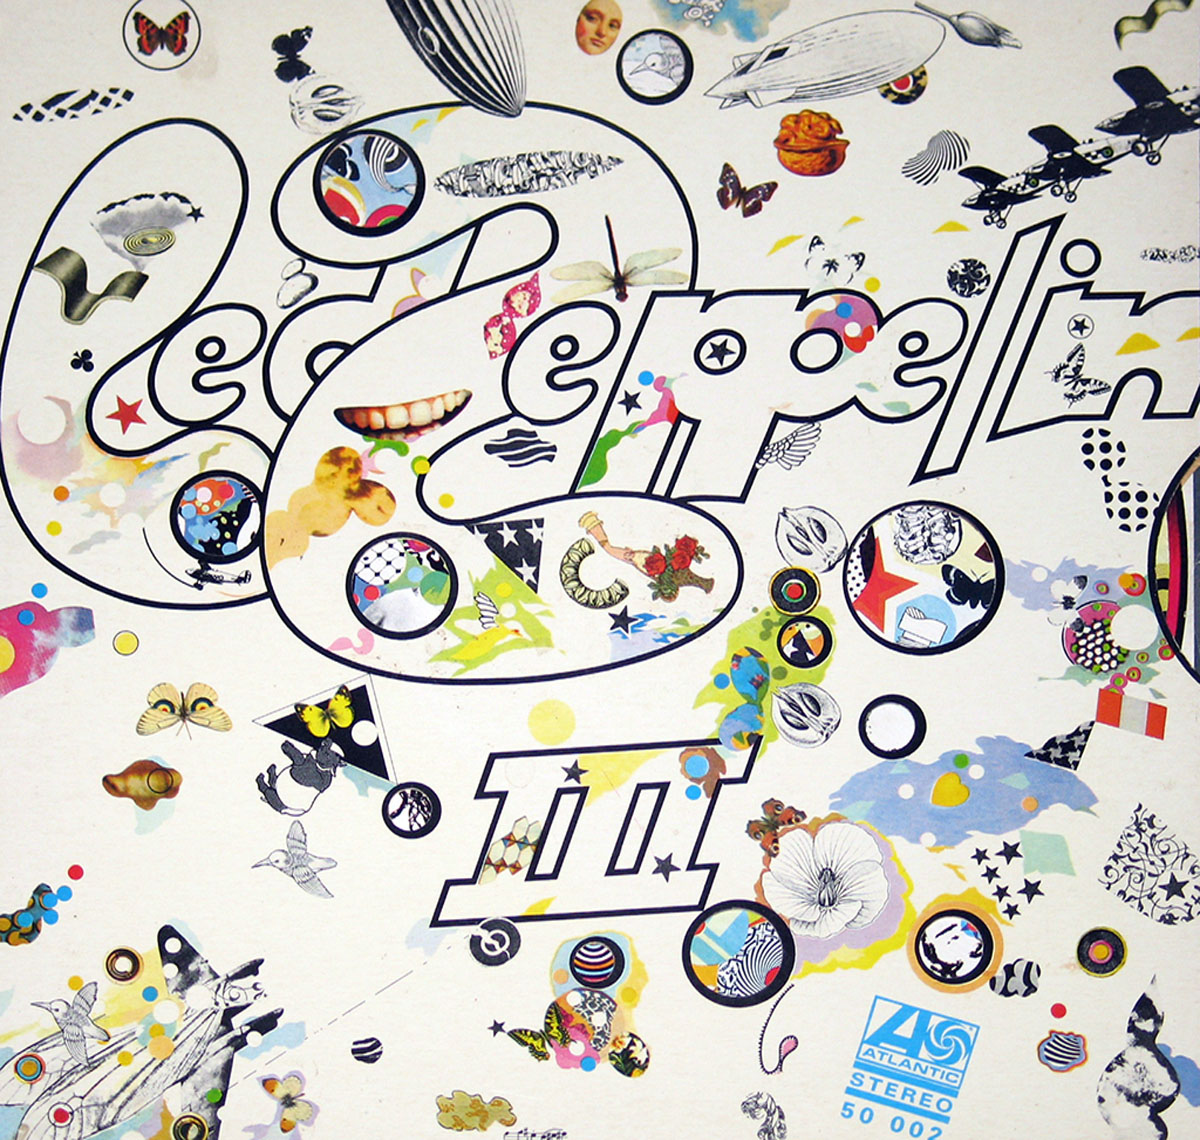 High Resolution Photo #1 LED ZEPPELIN III France Spinning Wheel